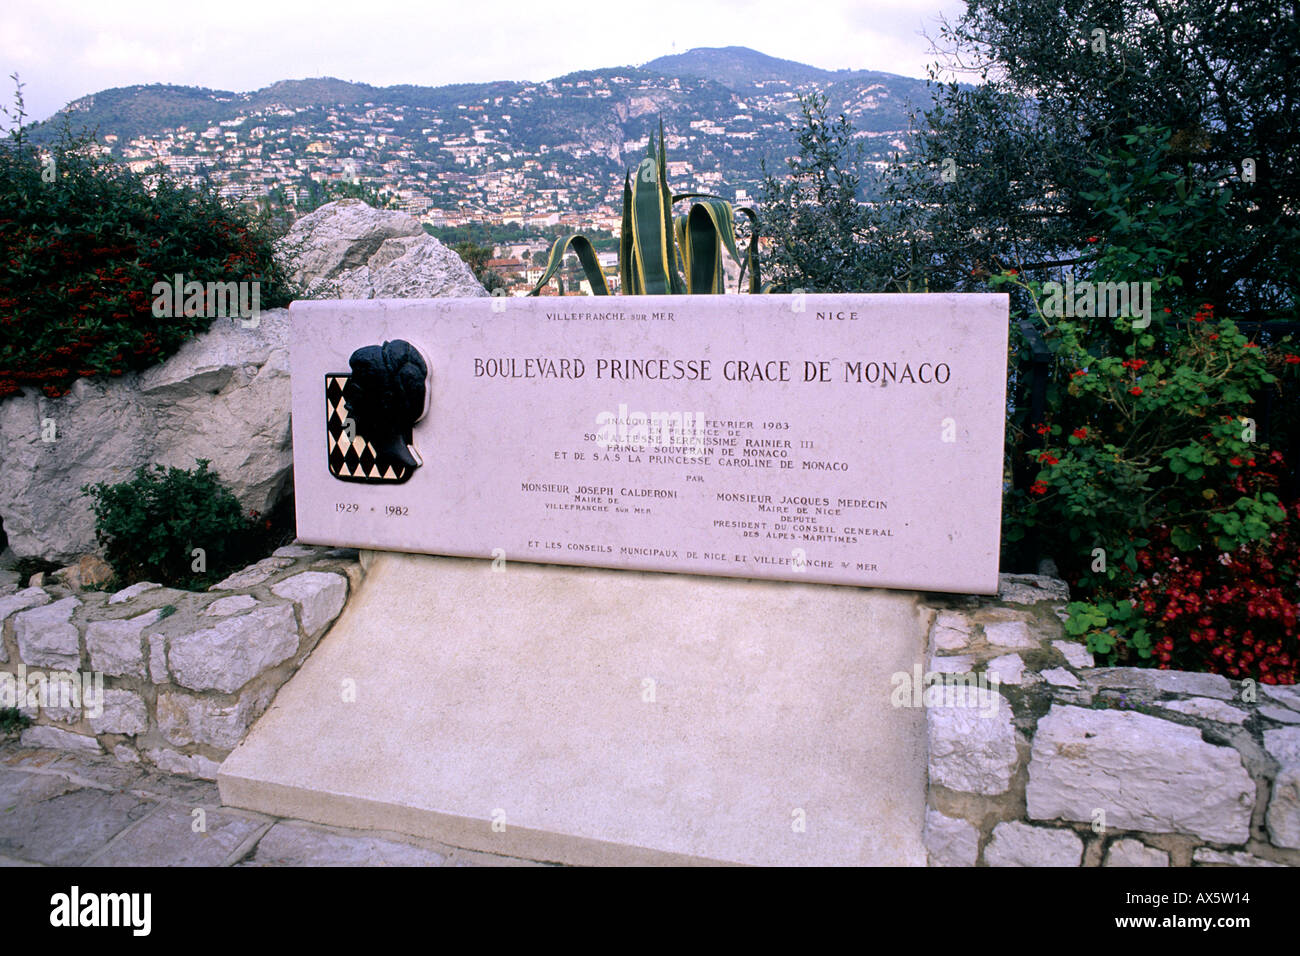 Monaco monument to Royalty in death of Princess Grace Kelly in Monaco - Stock Image